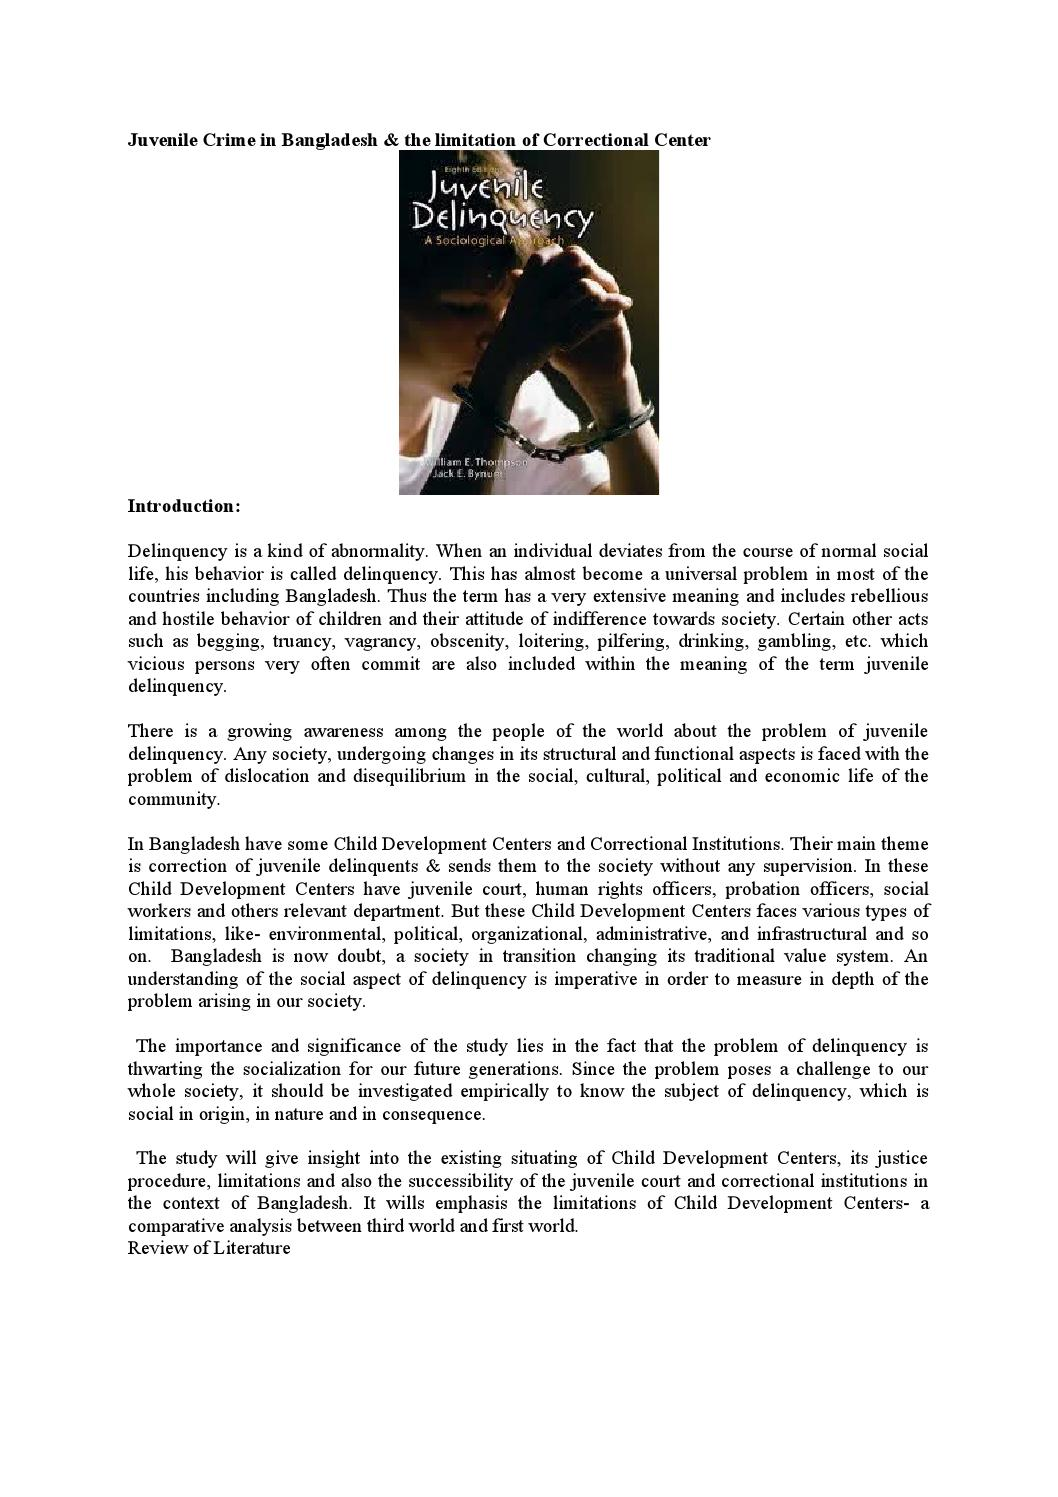 summary of literature review on juvenile delinquency Research proposal and lit review i the problem and setting the statement of the problem and subproblem juvenile delinquency is a persistent and pervasive social problem in america juvenile crime represents over 40% of the total arrests for major crimes, including murder, rape, and burglary (hawkins and weis 1985.